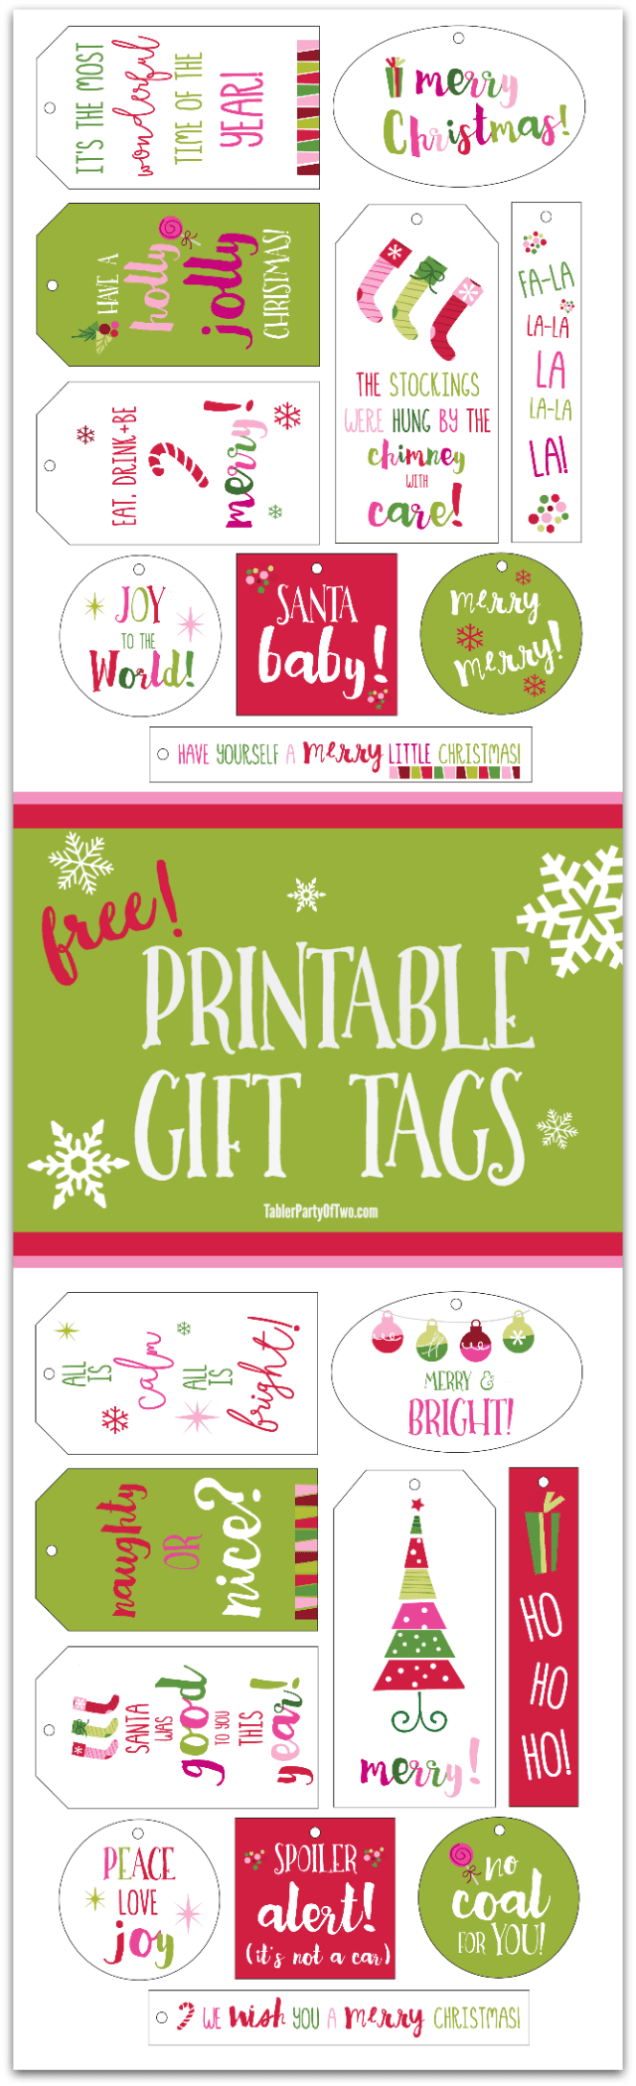 Free printable gift cards collection 2 simple prints card free christmas printable gift tags for you simple print them on white card stock negle Images